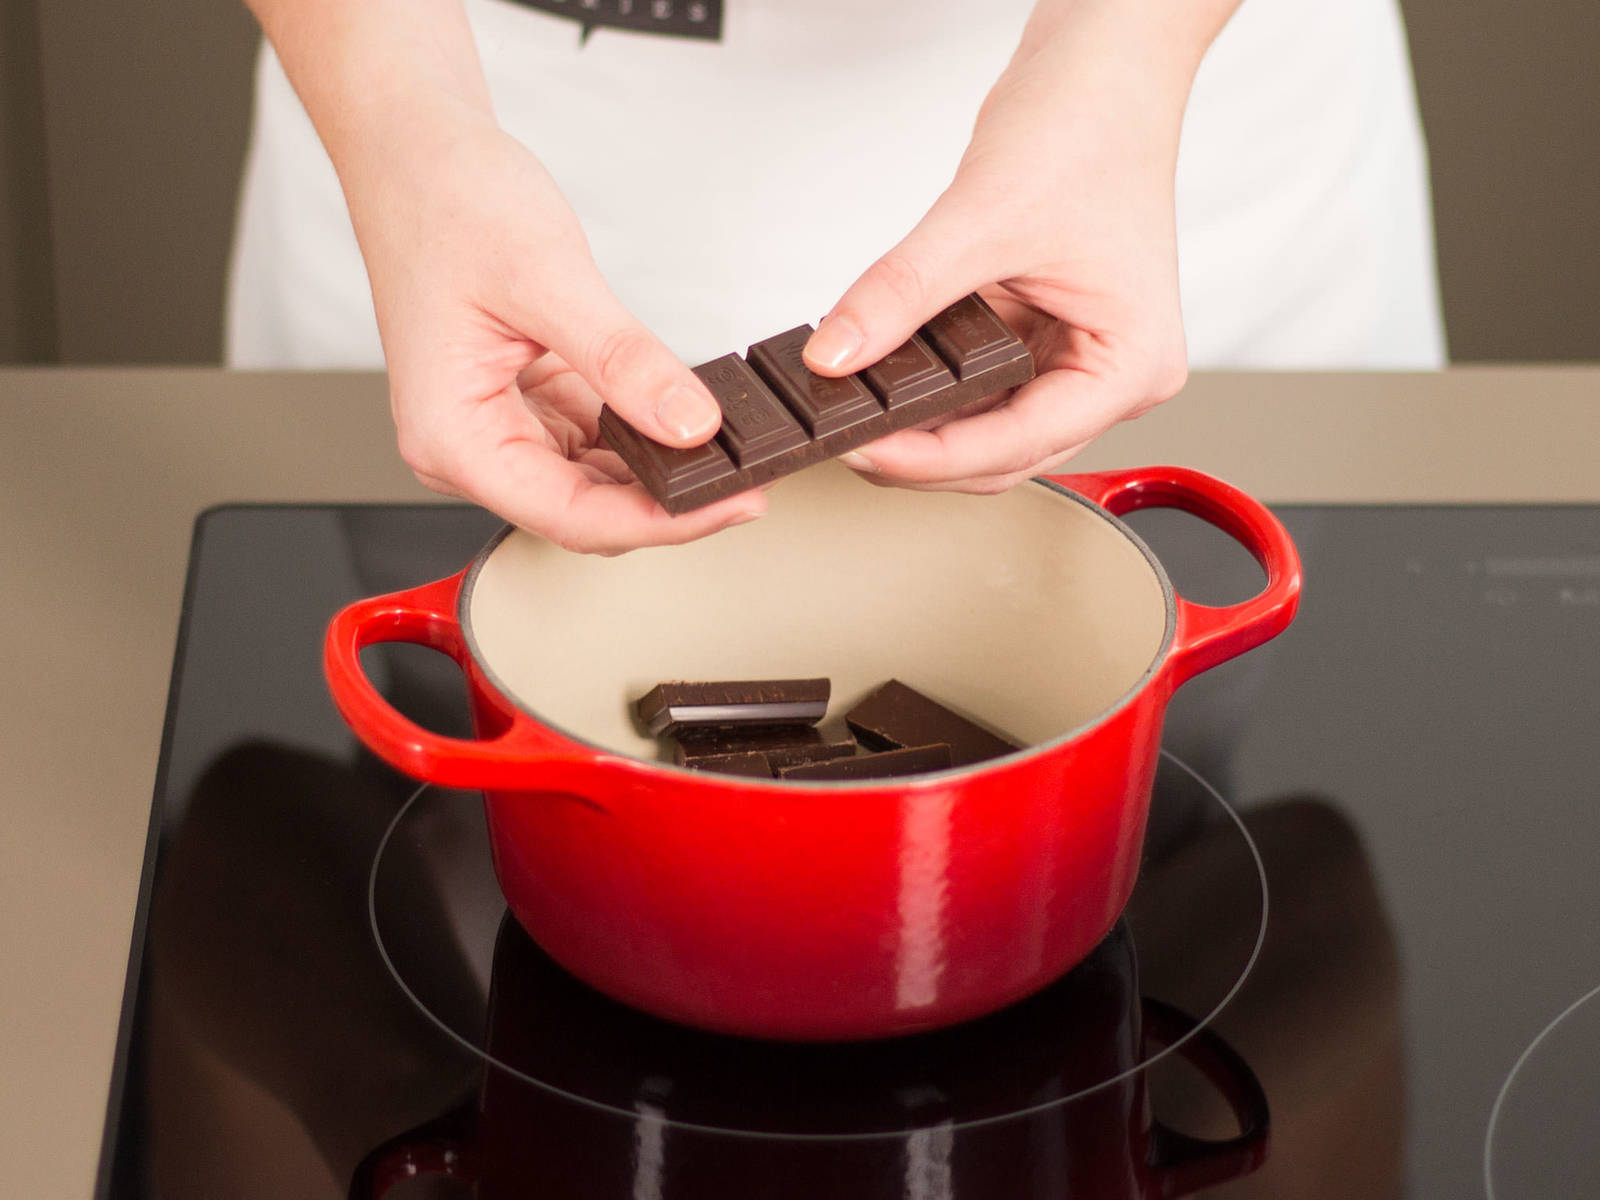 Add chocolate to a small saucepan and melt over low heat.